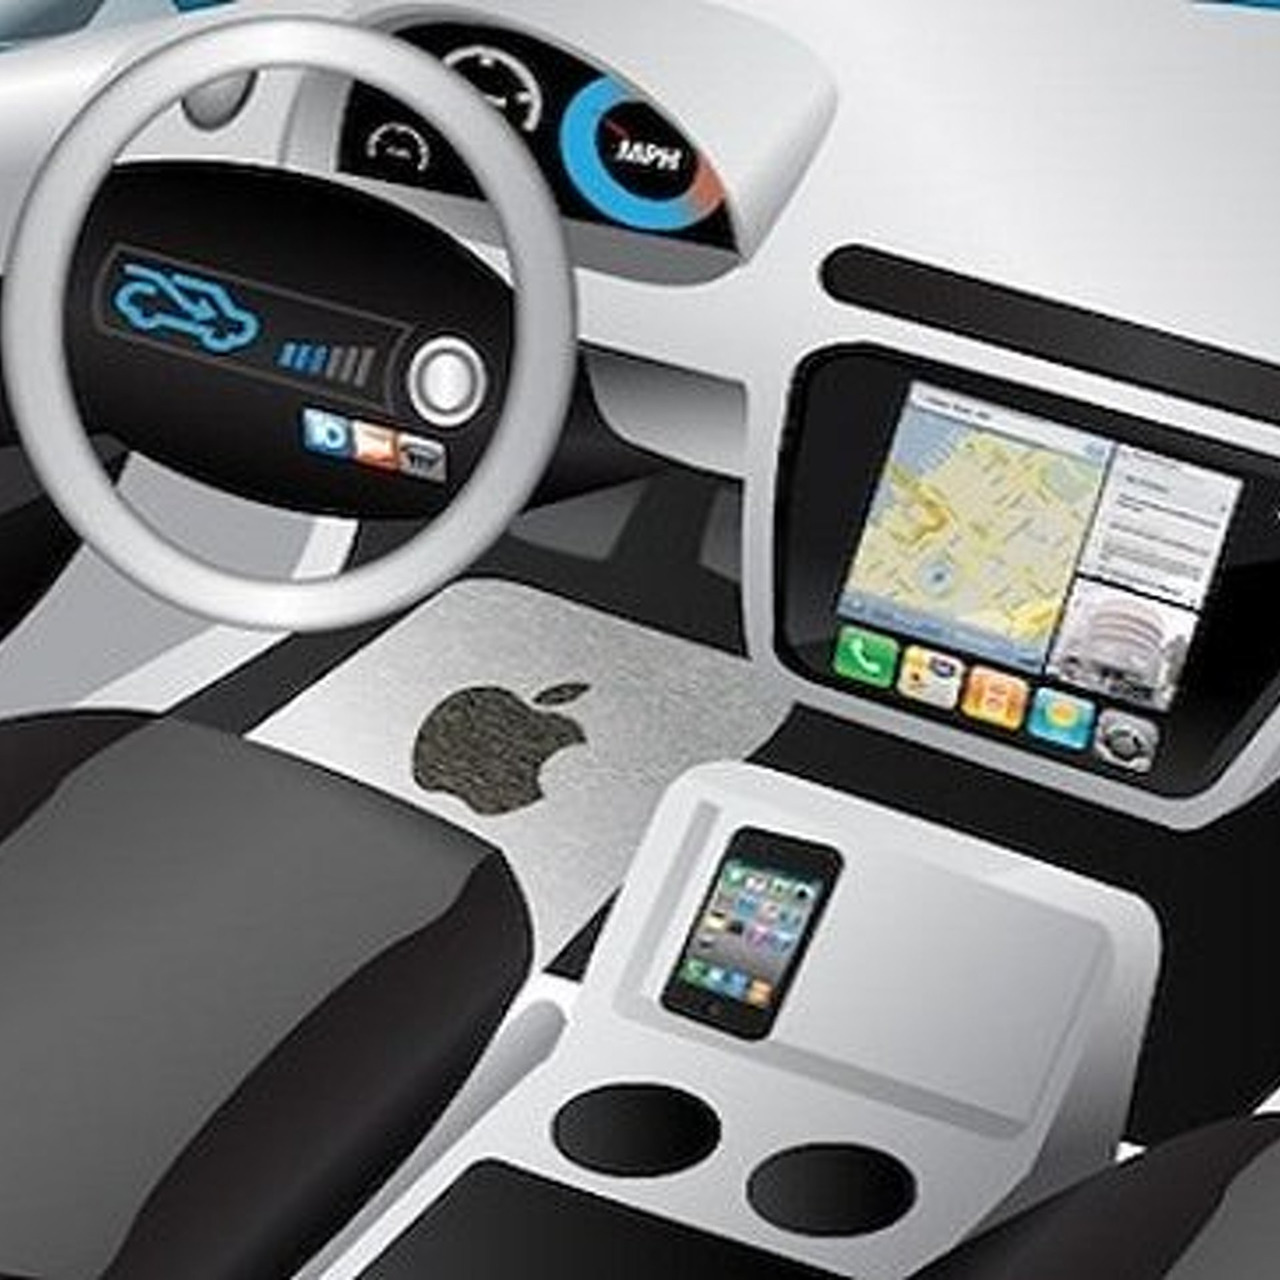 What Can We Expect from the Apple Car?